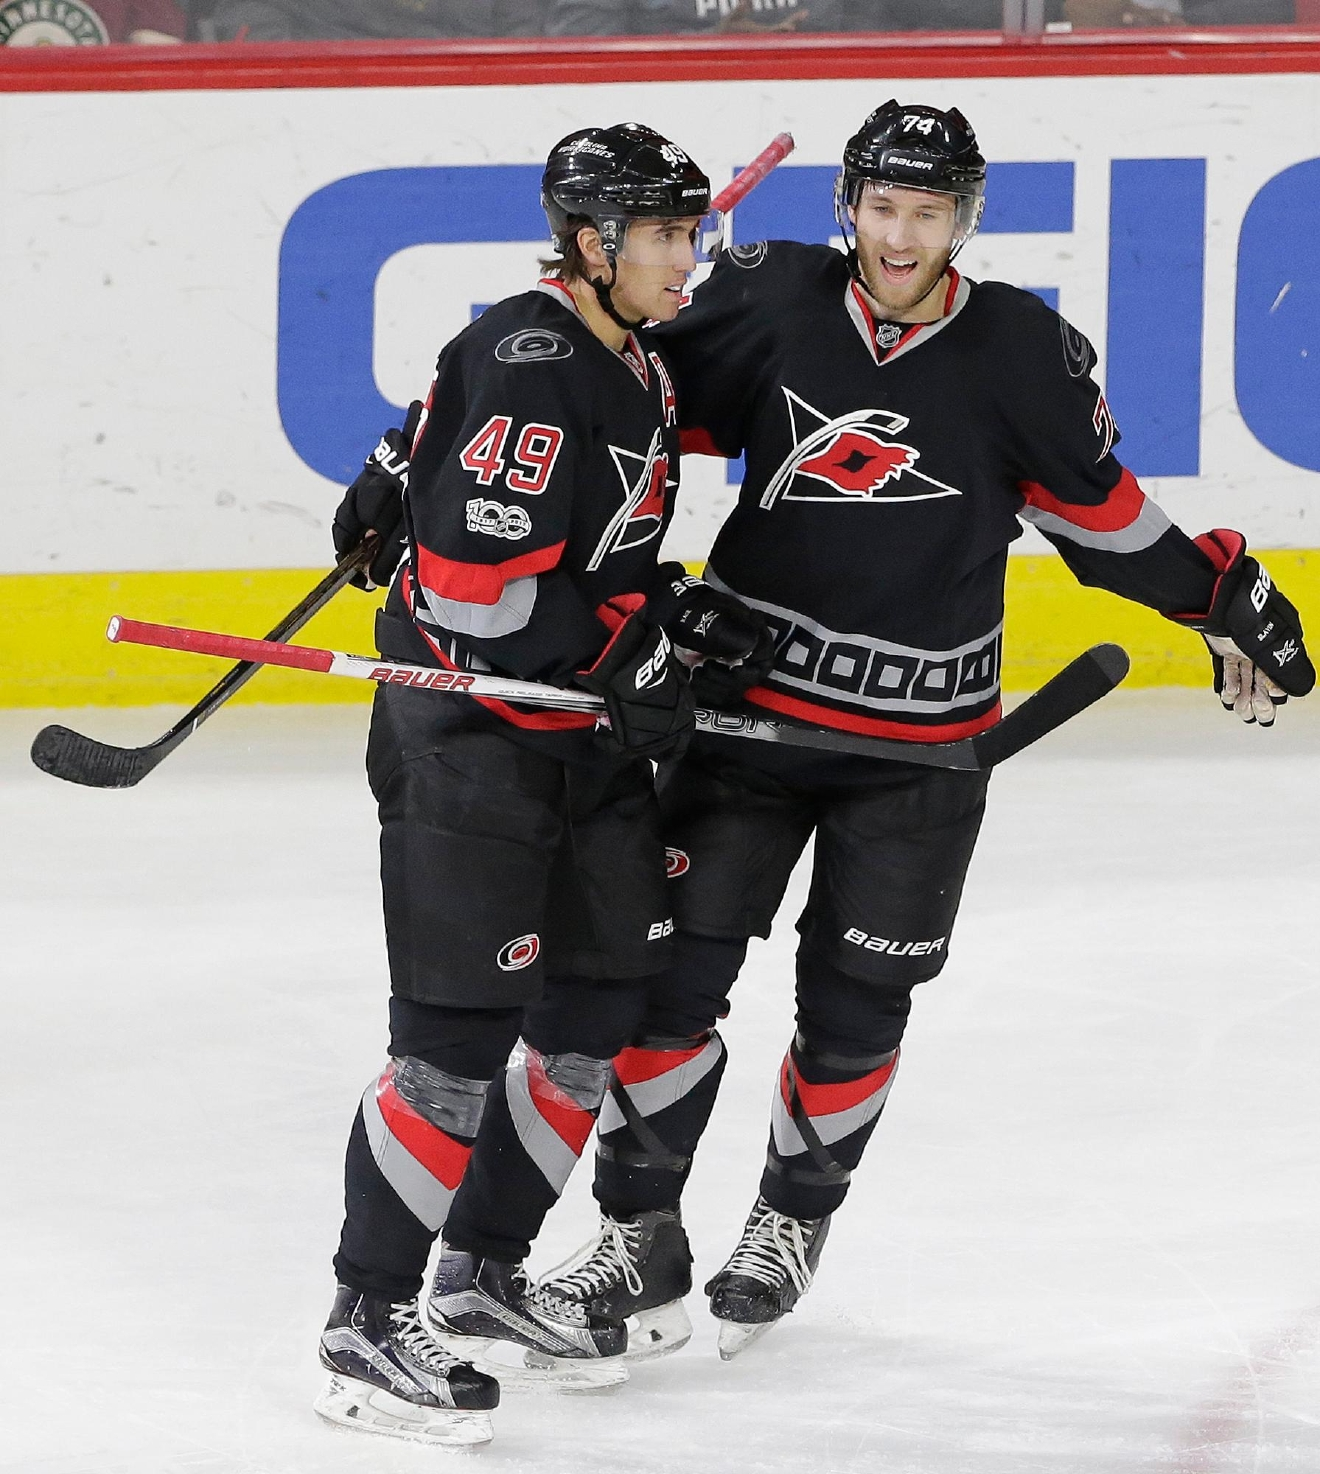 Carolina Hurricanes' Victor Rask (49), of Sweden, is congratulated by Jaccob Slavin (74) following Rask's game-winning goal against the Minnesota Wild during the third period of an NHL hockey game in Raleigh, N.C., Thursday, March 16, 2017. Carolina won 3-1. (AP Photo/Gerry Broome)